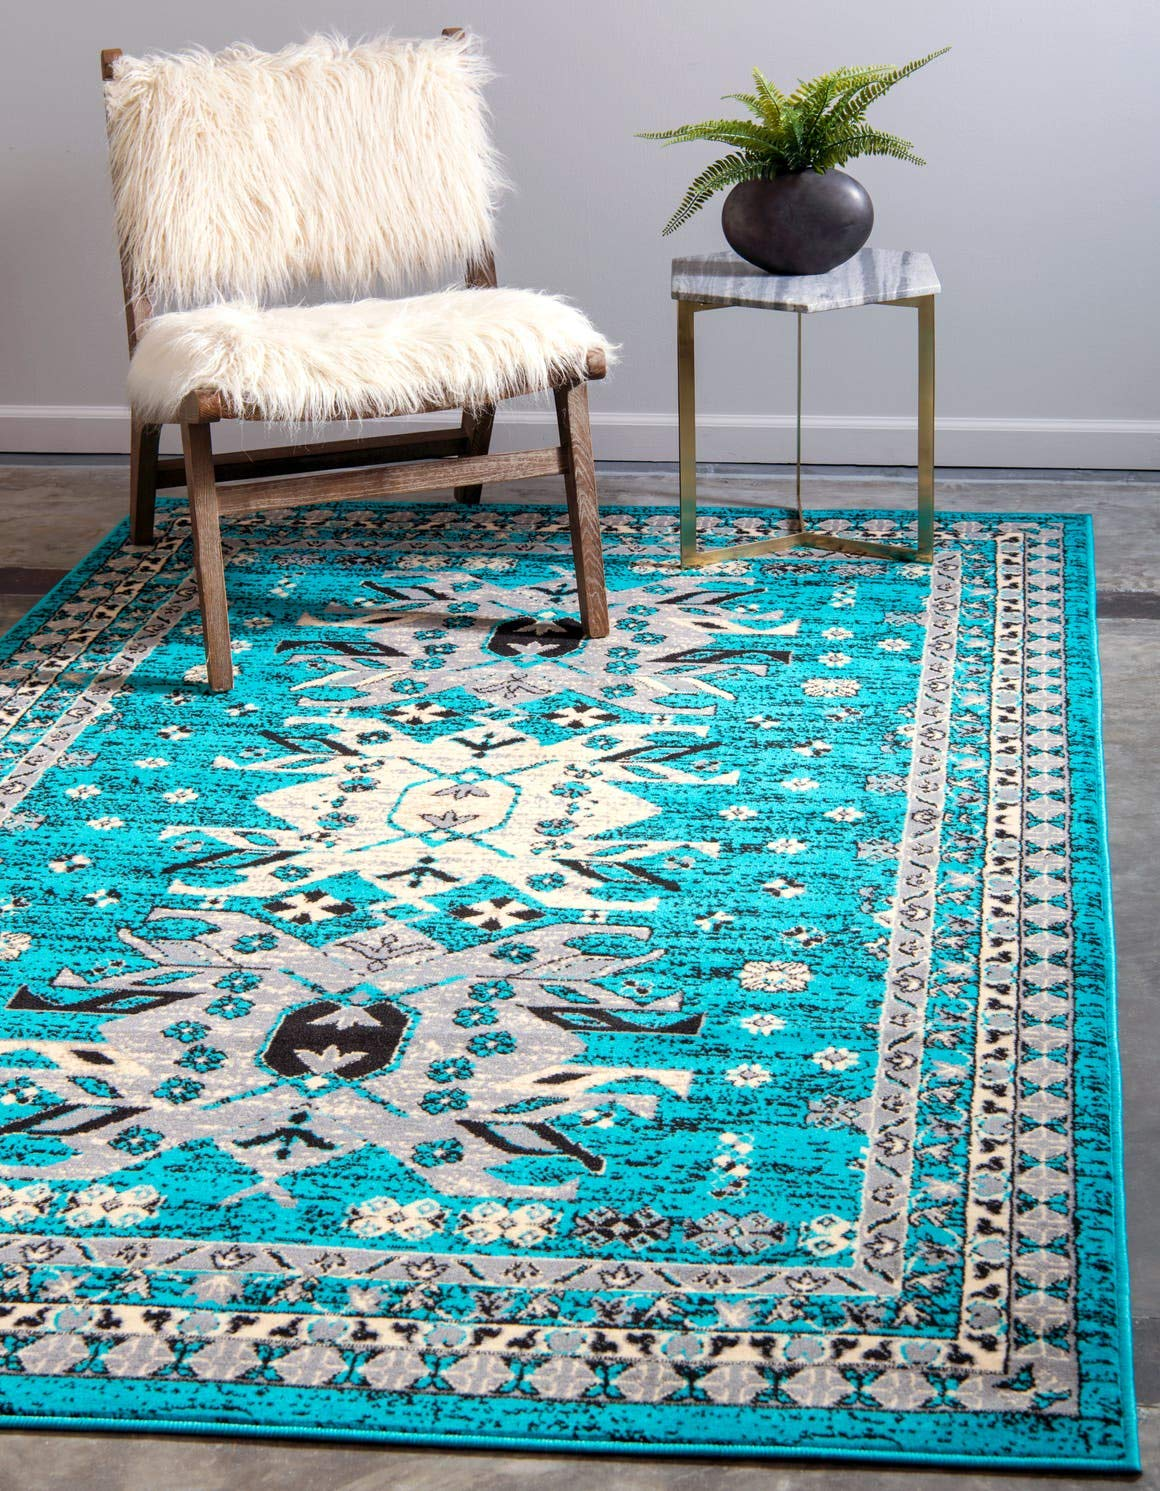 Unique Loom Taftan Collection Geometric Tribal Turquoise Area Rug 4 0 x 6 0